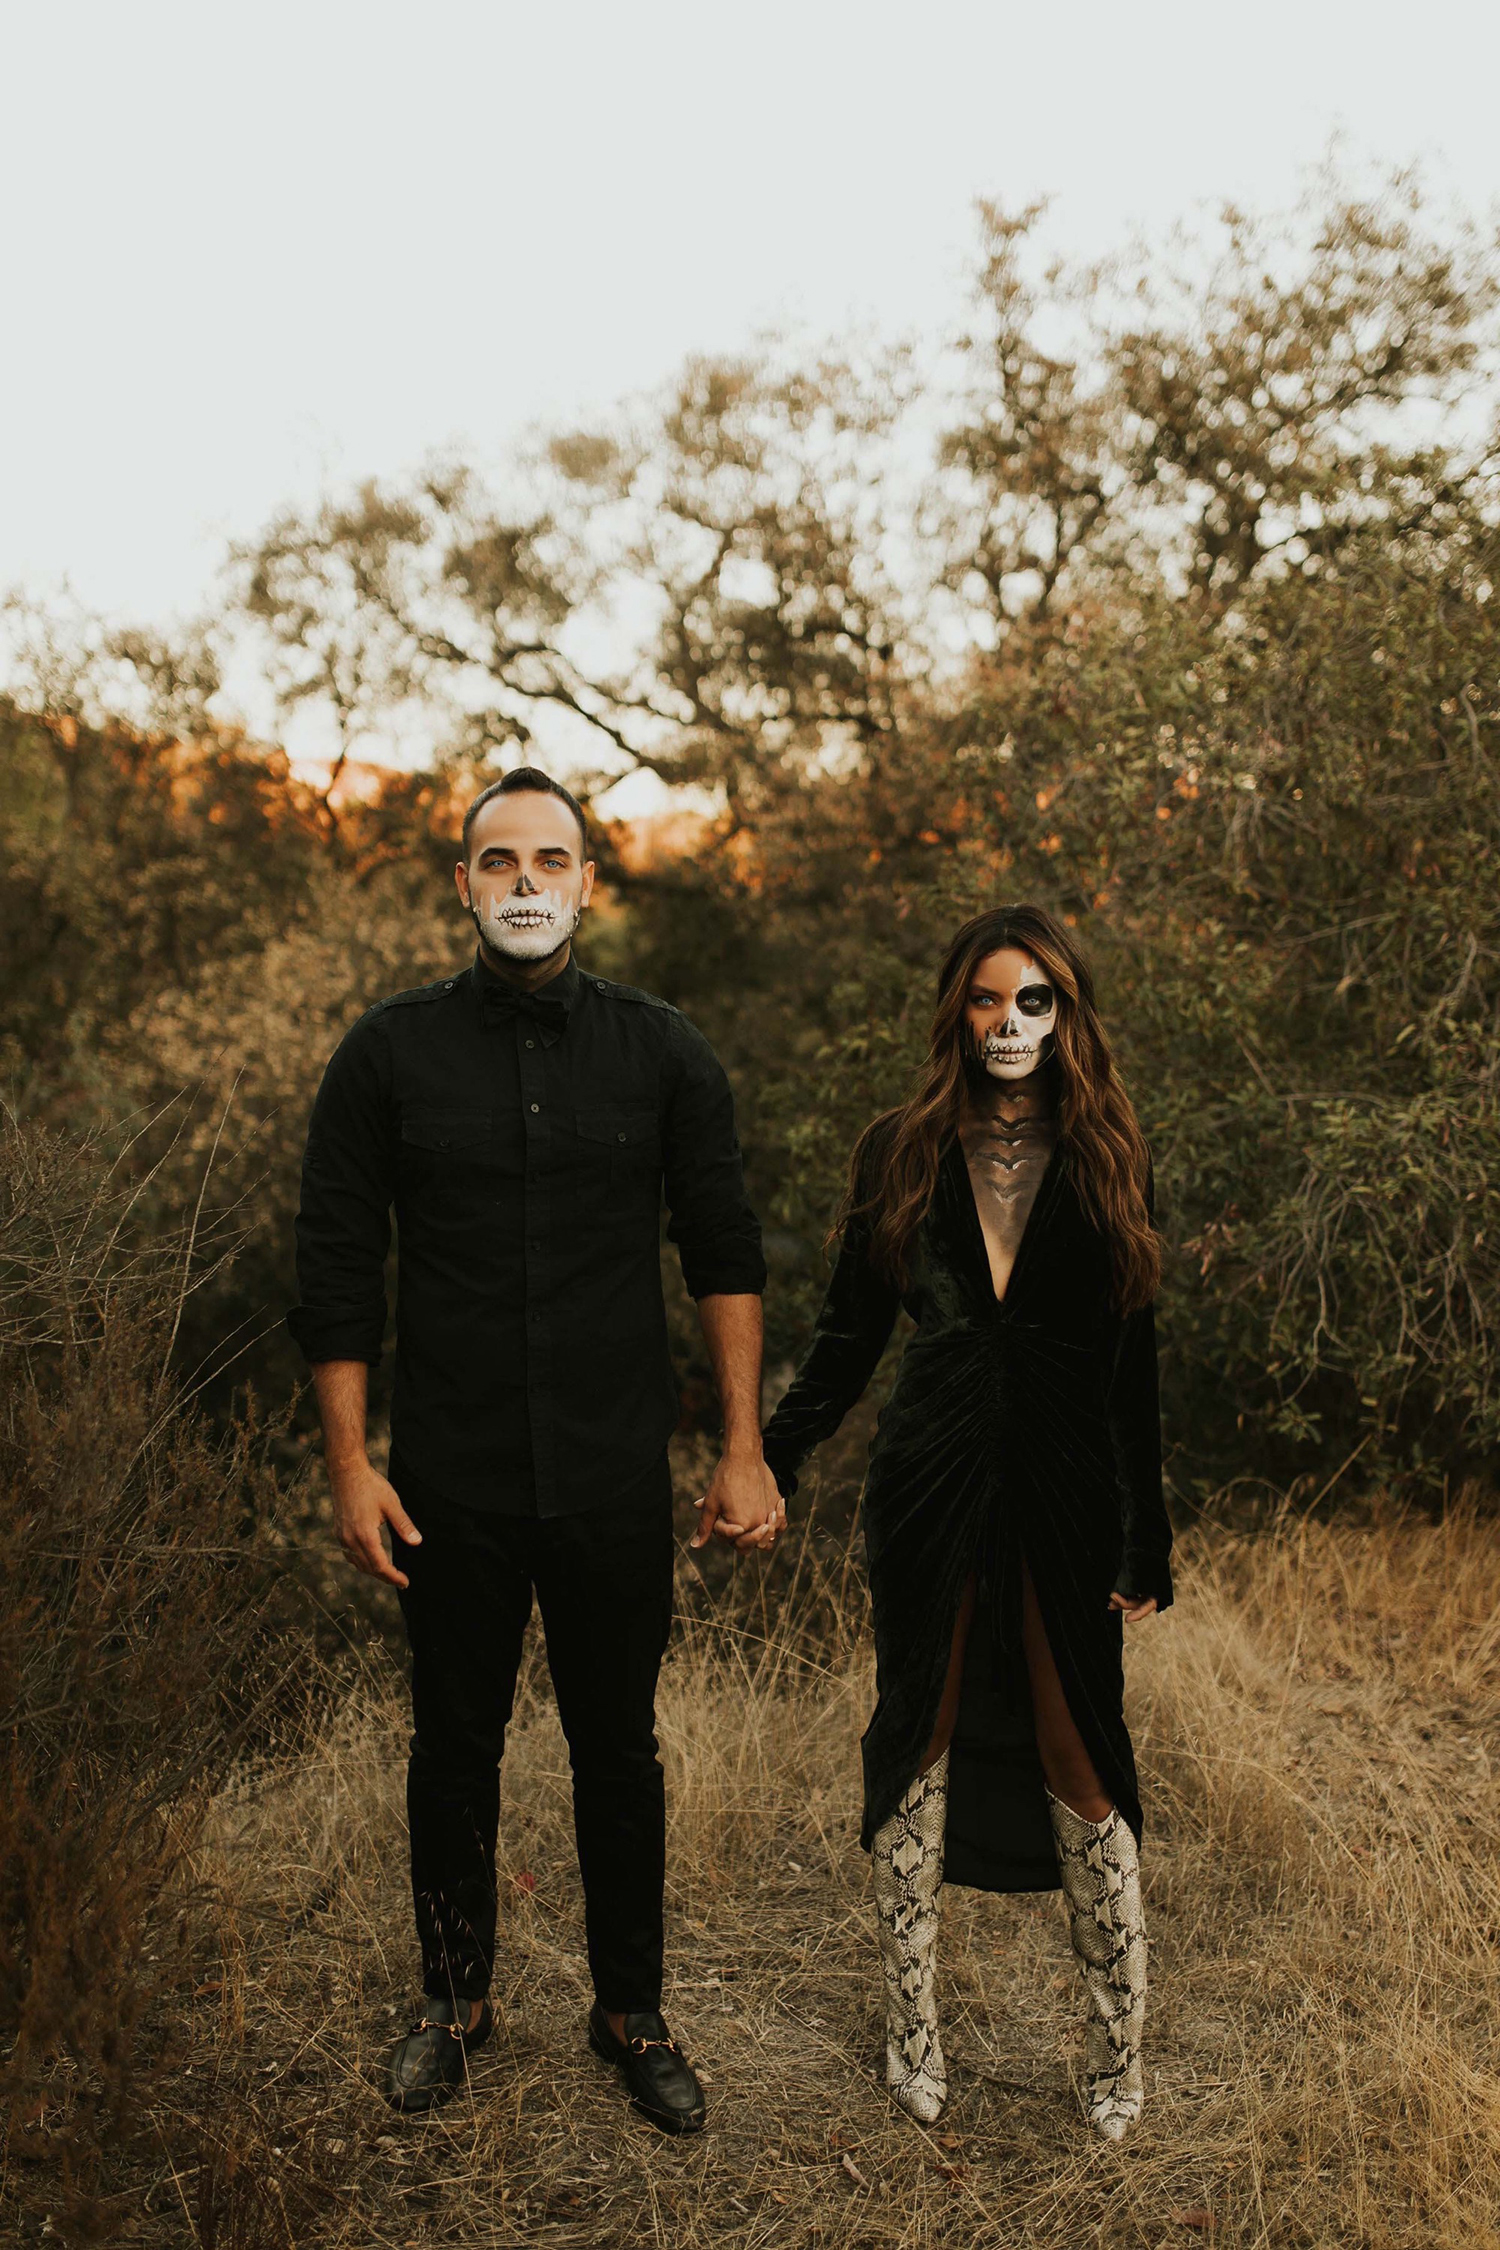 halloween DIY skull makeup couples costume